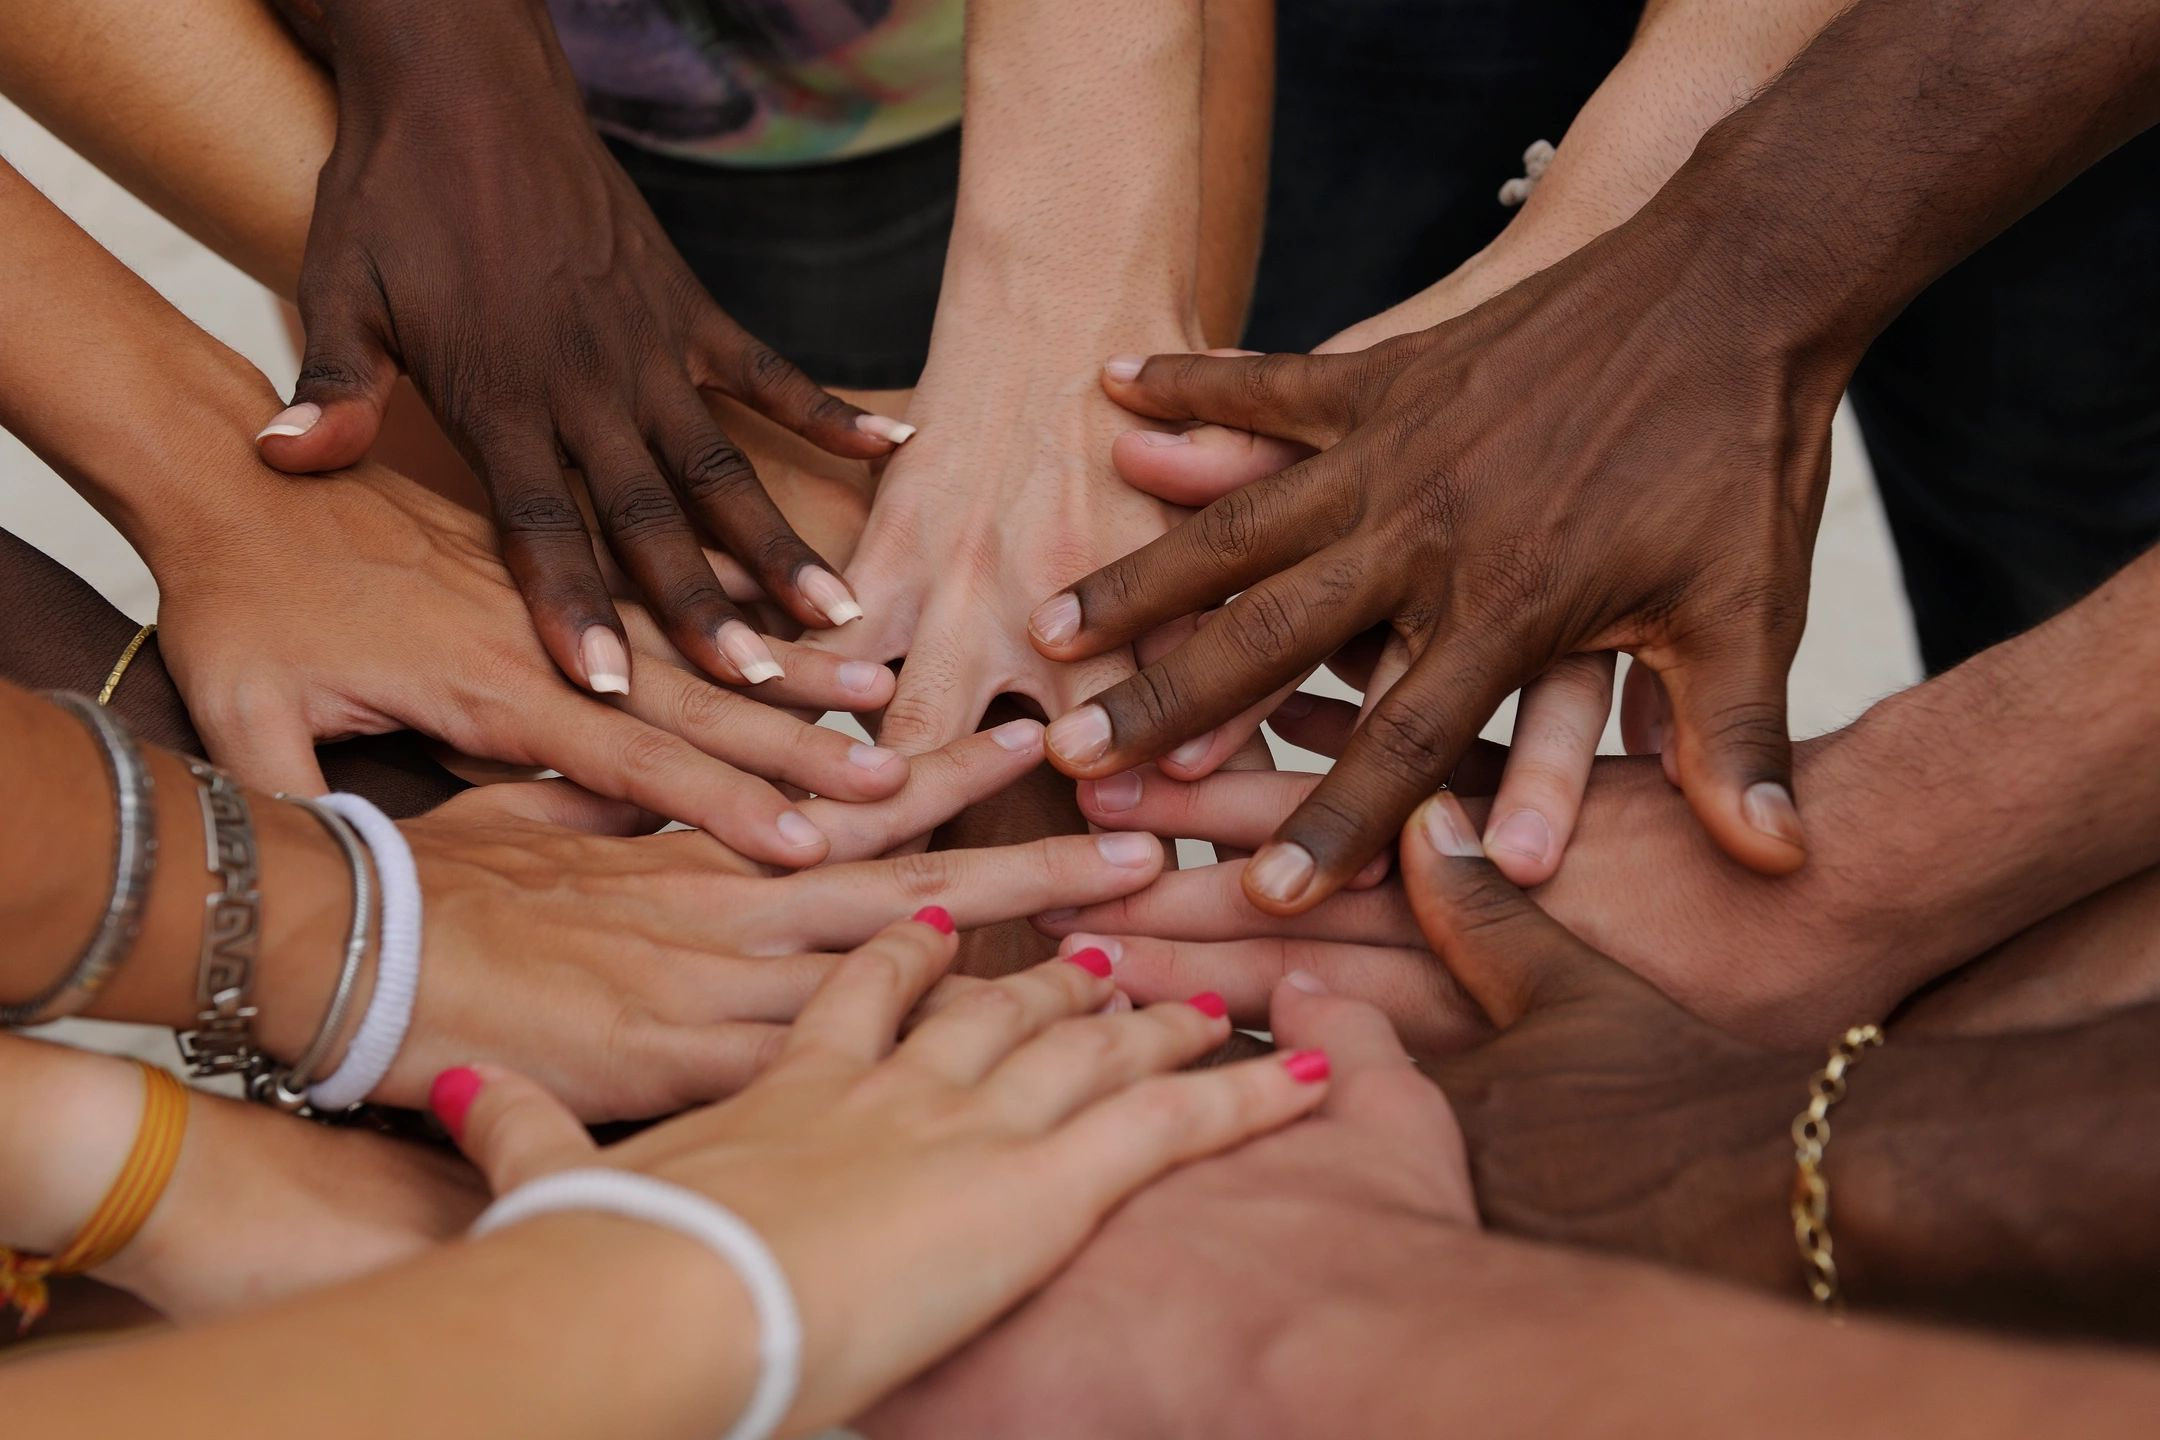 Nonprofit image of hands